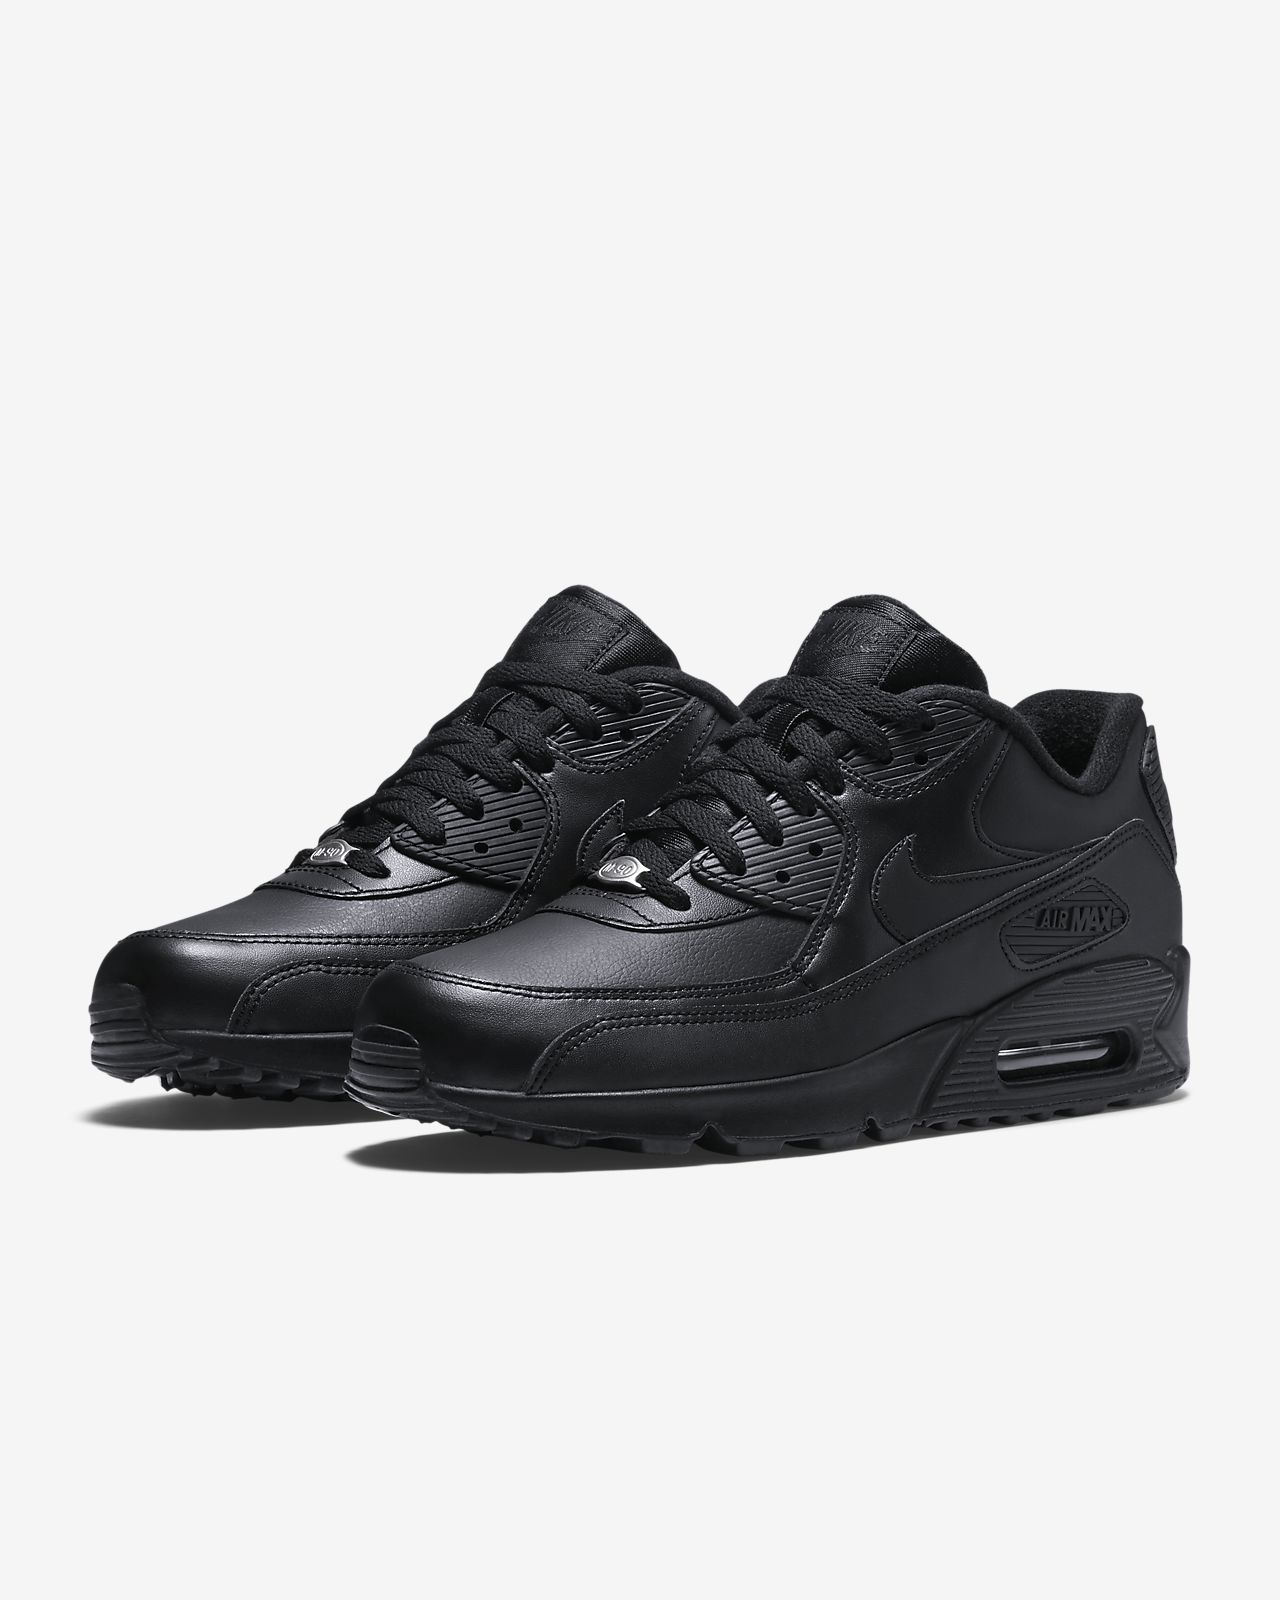 Nike Air Max 90 Leather noire